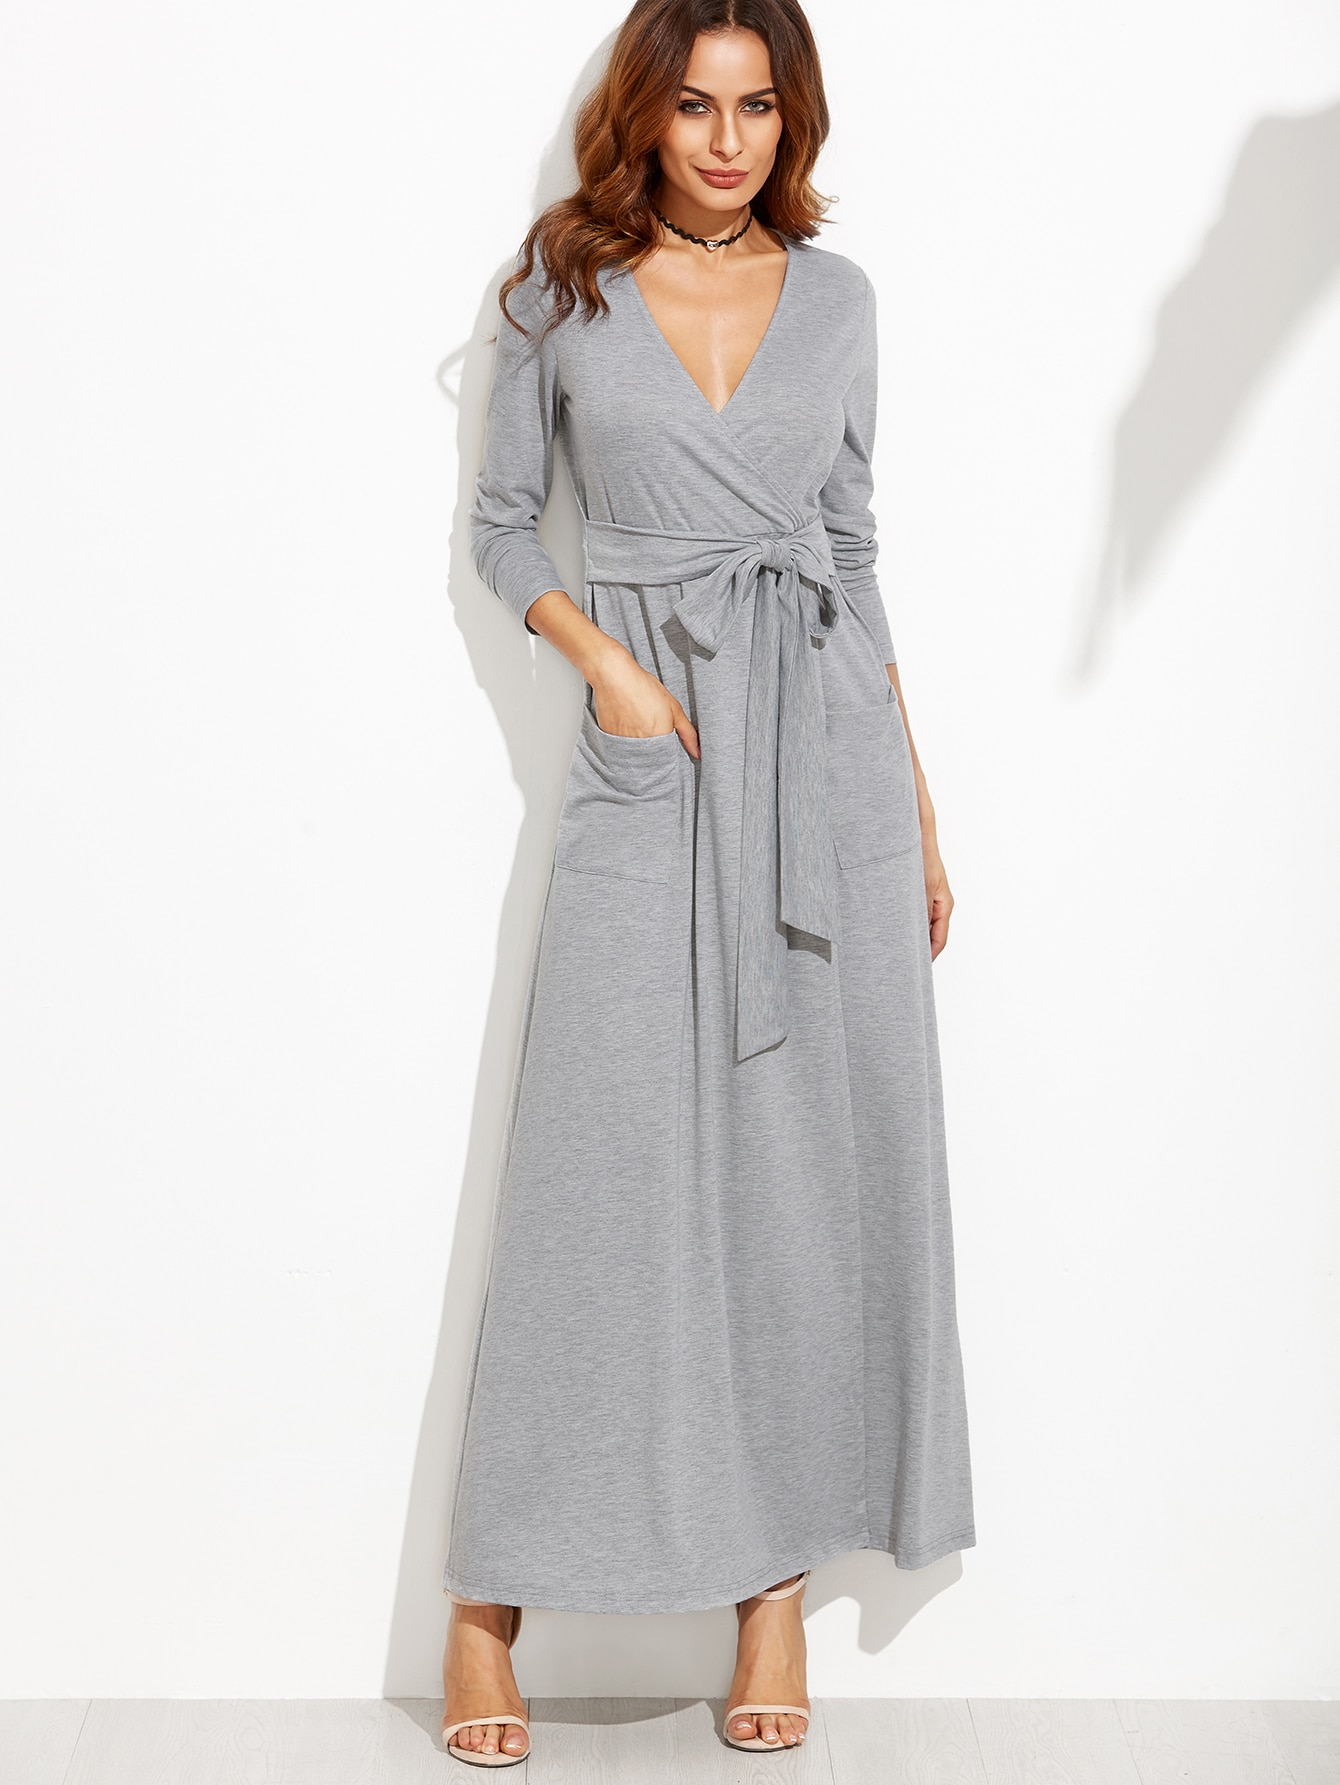 0a29310a8ee Heather Grey Wrap Maxi Dress With Pockets EmmaCloth-Women Fast ...